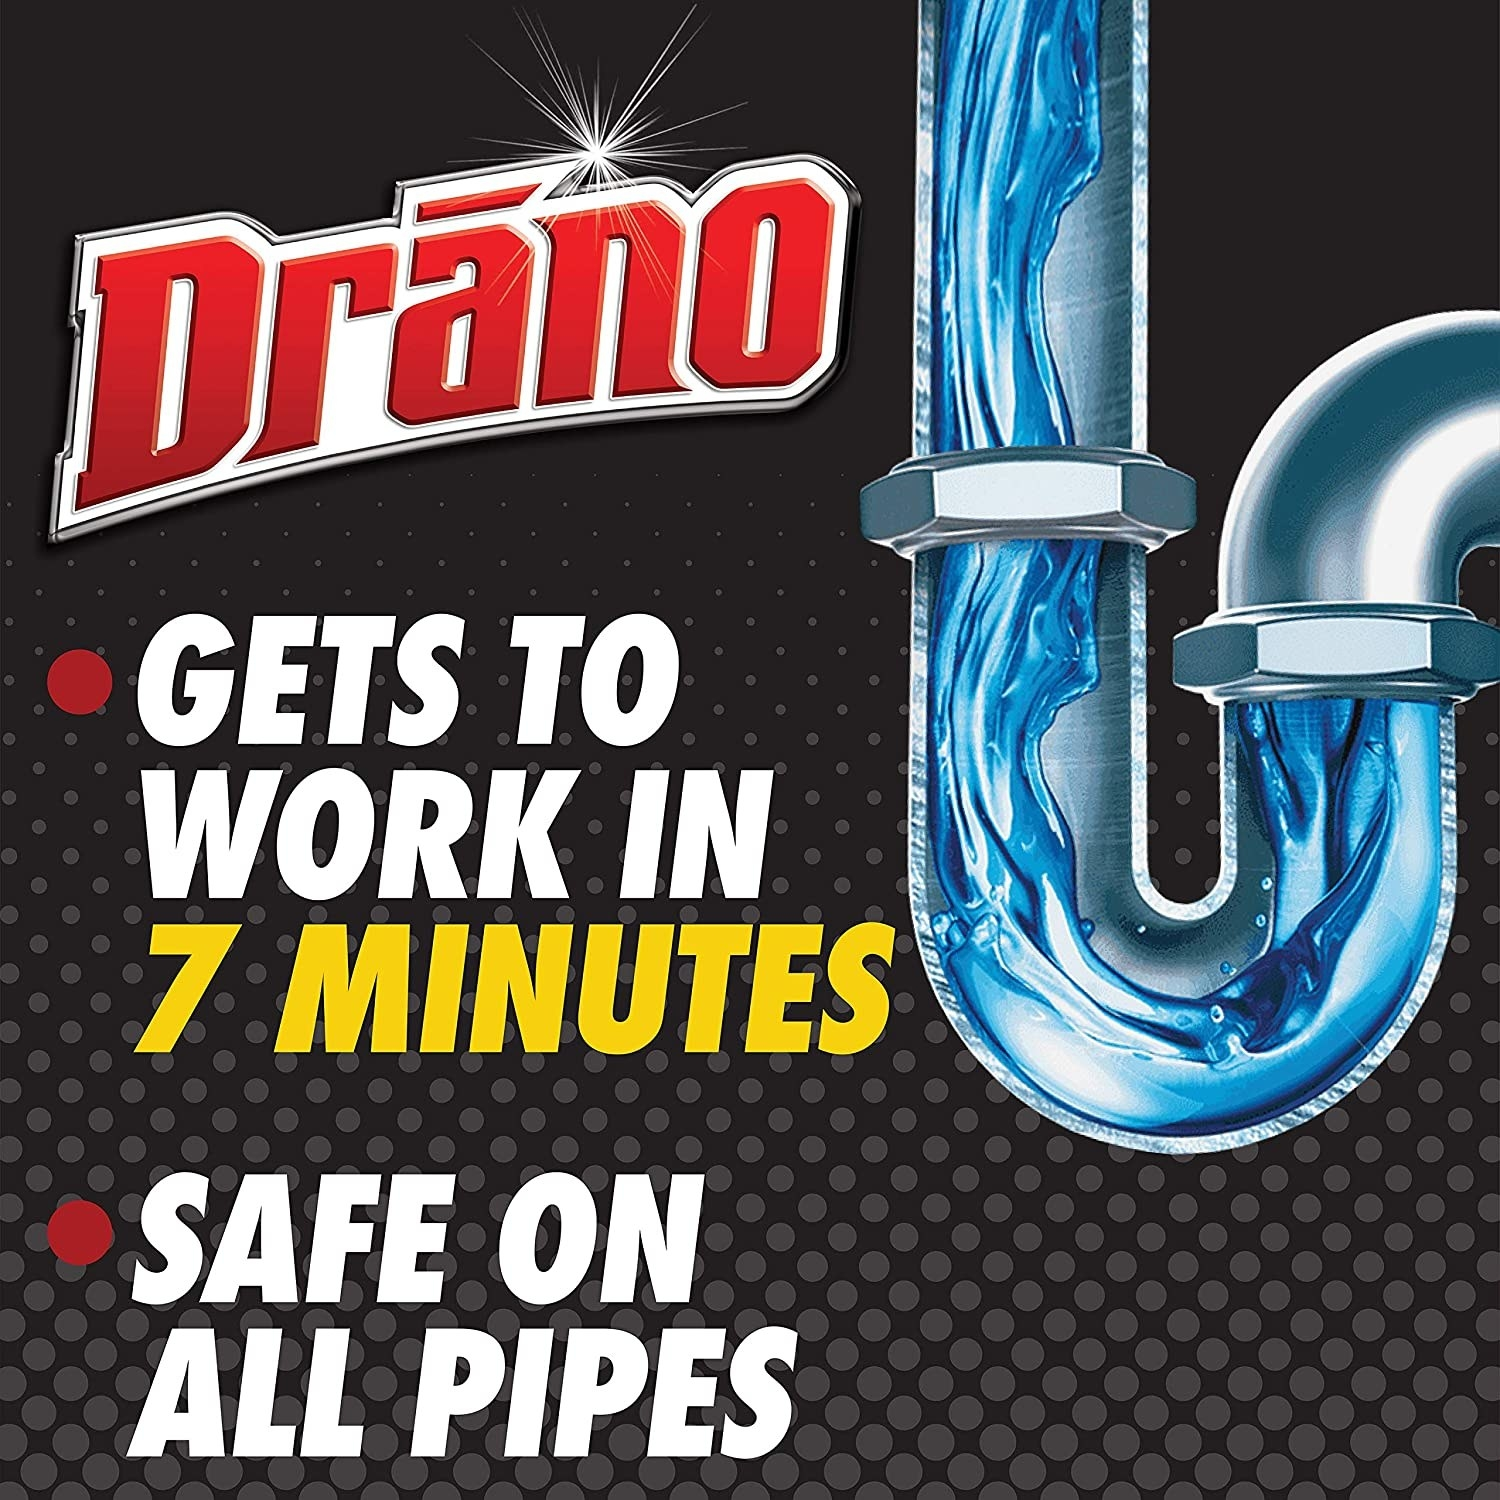 promo image that says it's safe on all pipes and works in seven minutes